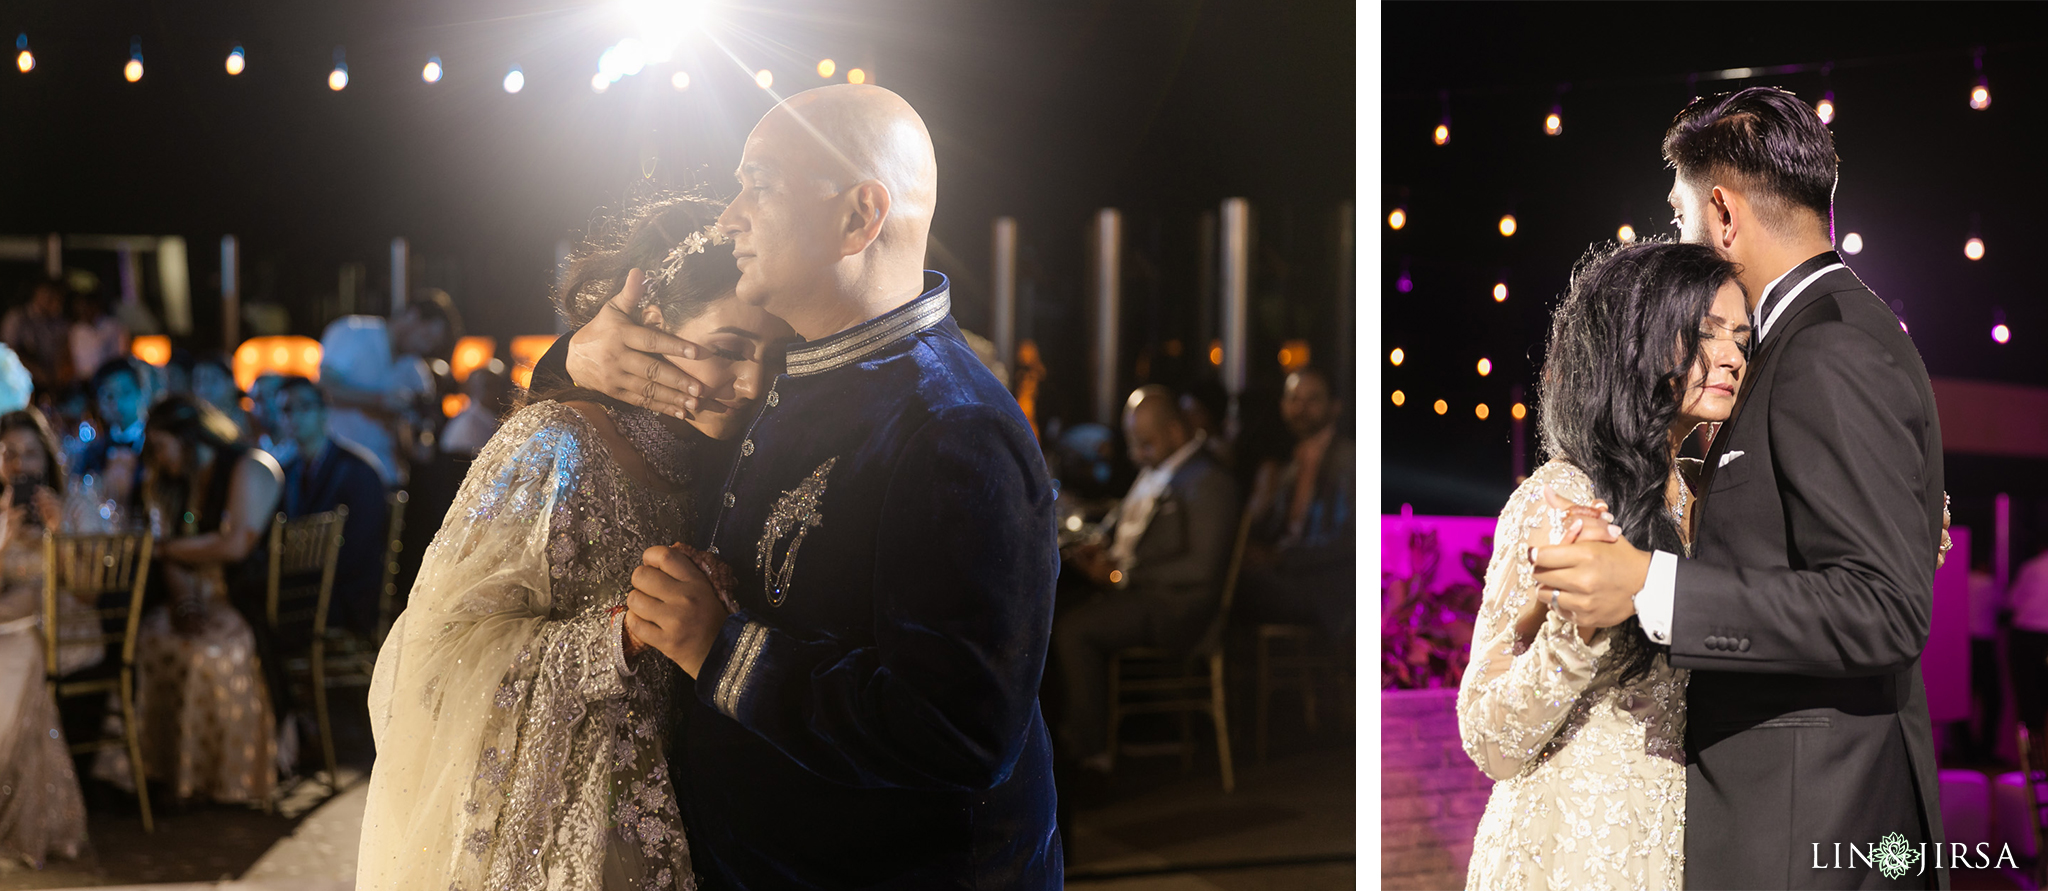 51 Generations El Dorado Royale Cancun Mexico Indian Wedding Reception Photography